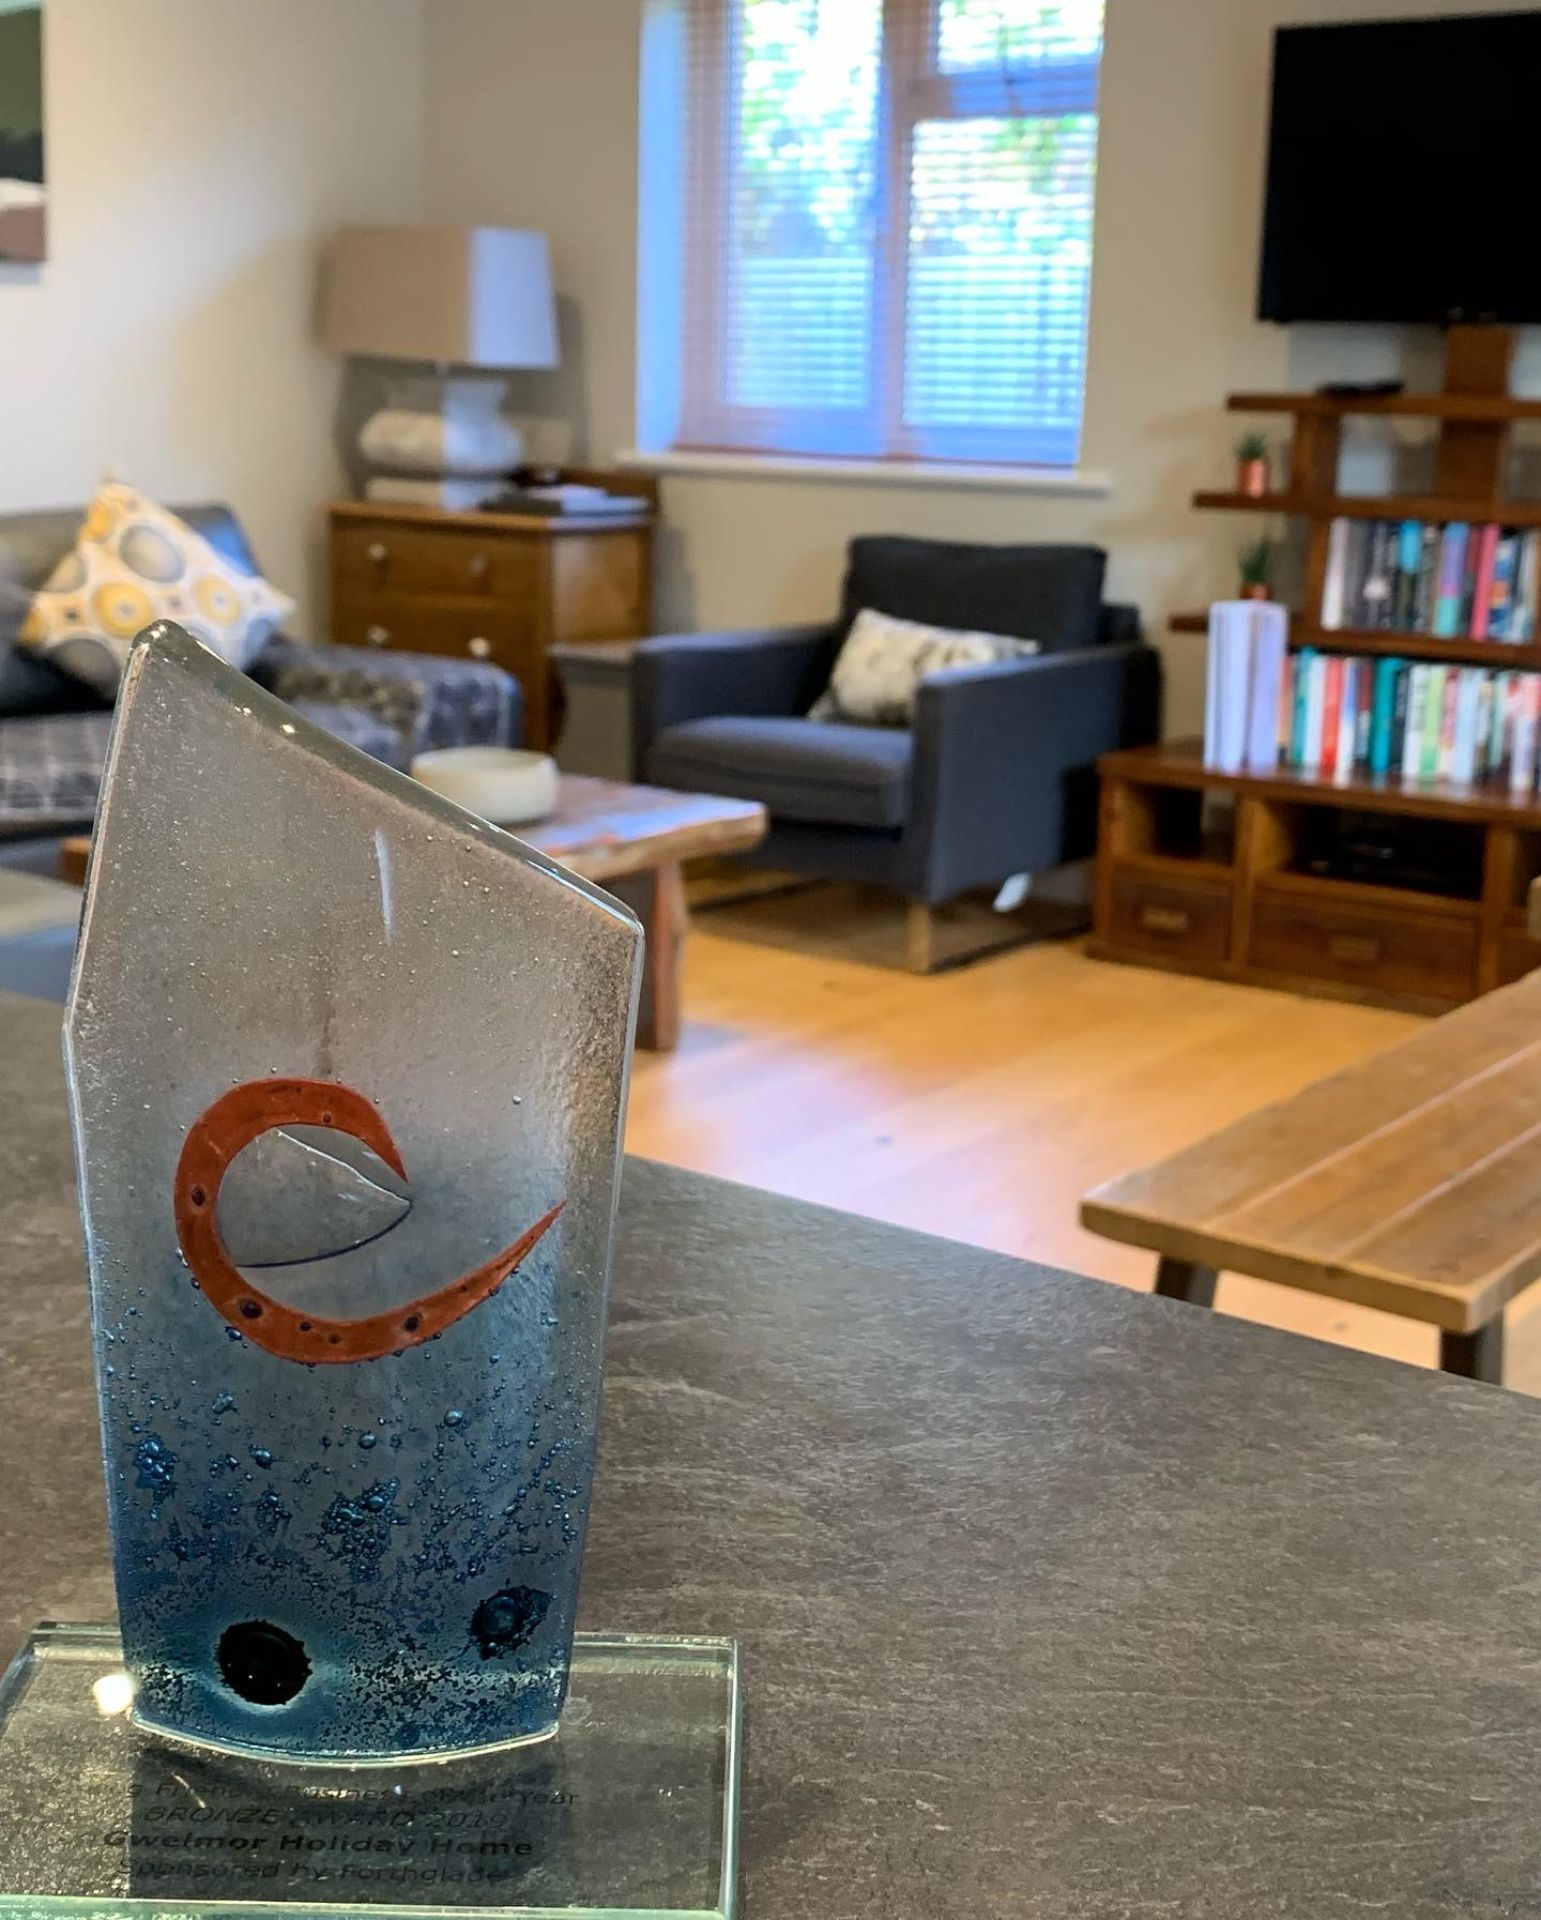 Gwelmor in Widemouth Bay won Bronze for dog friendly business in the 2019/20 Cornwall Tourism Awards